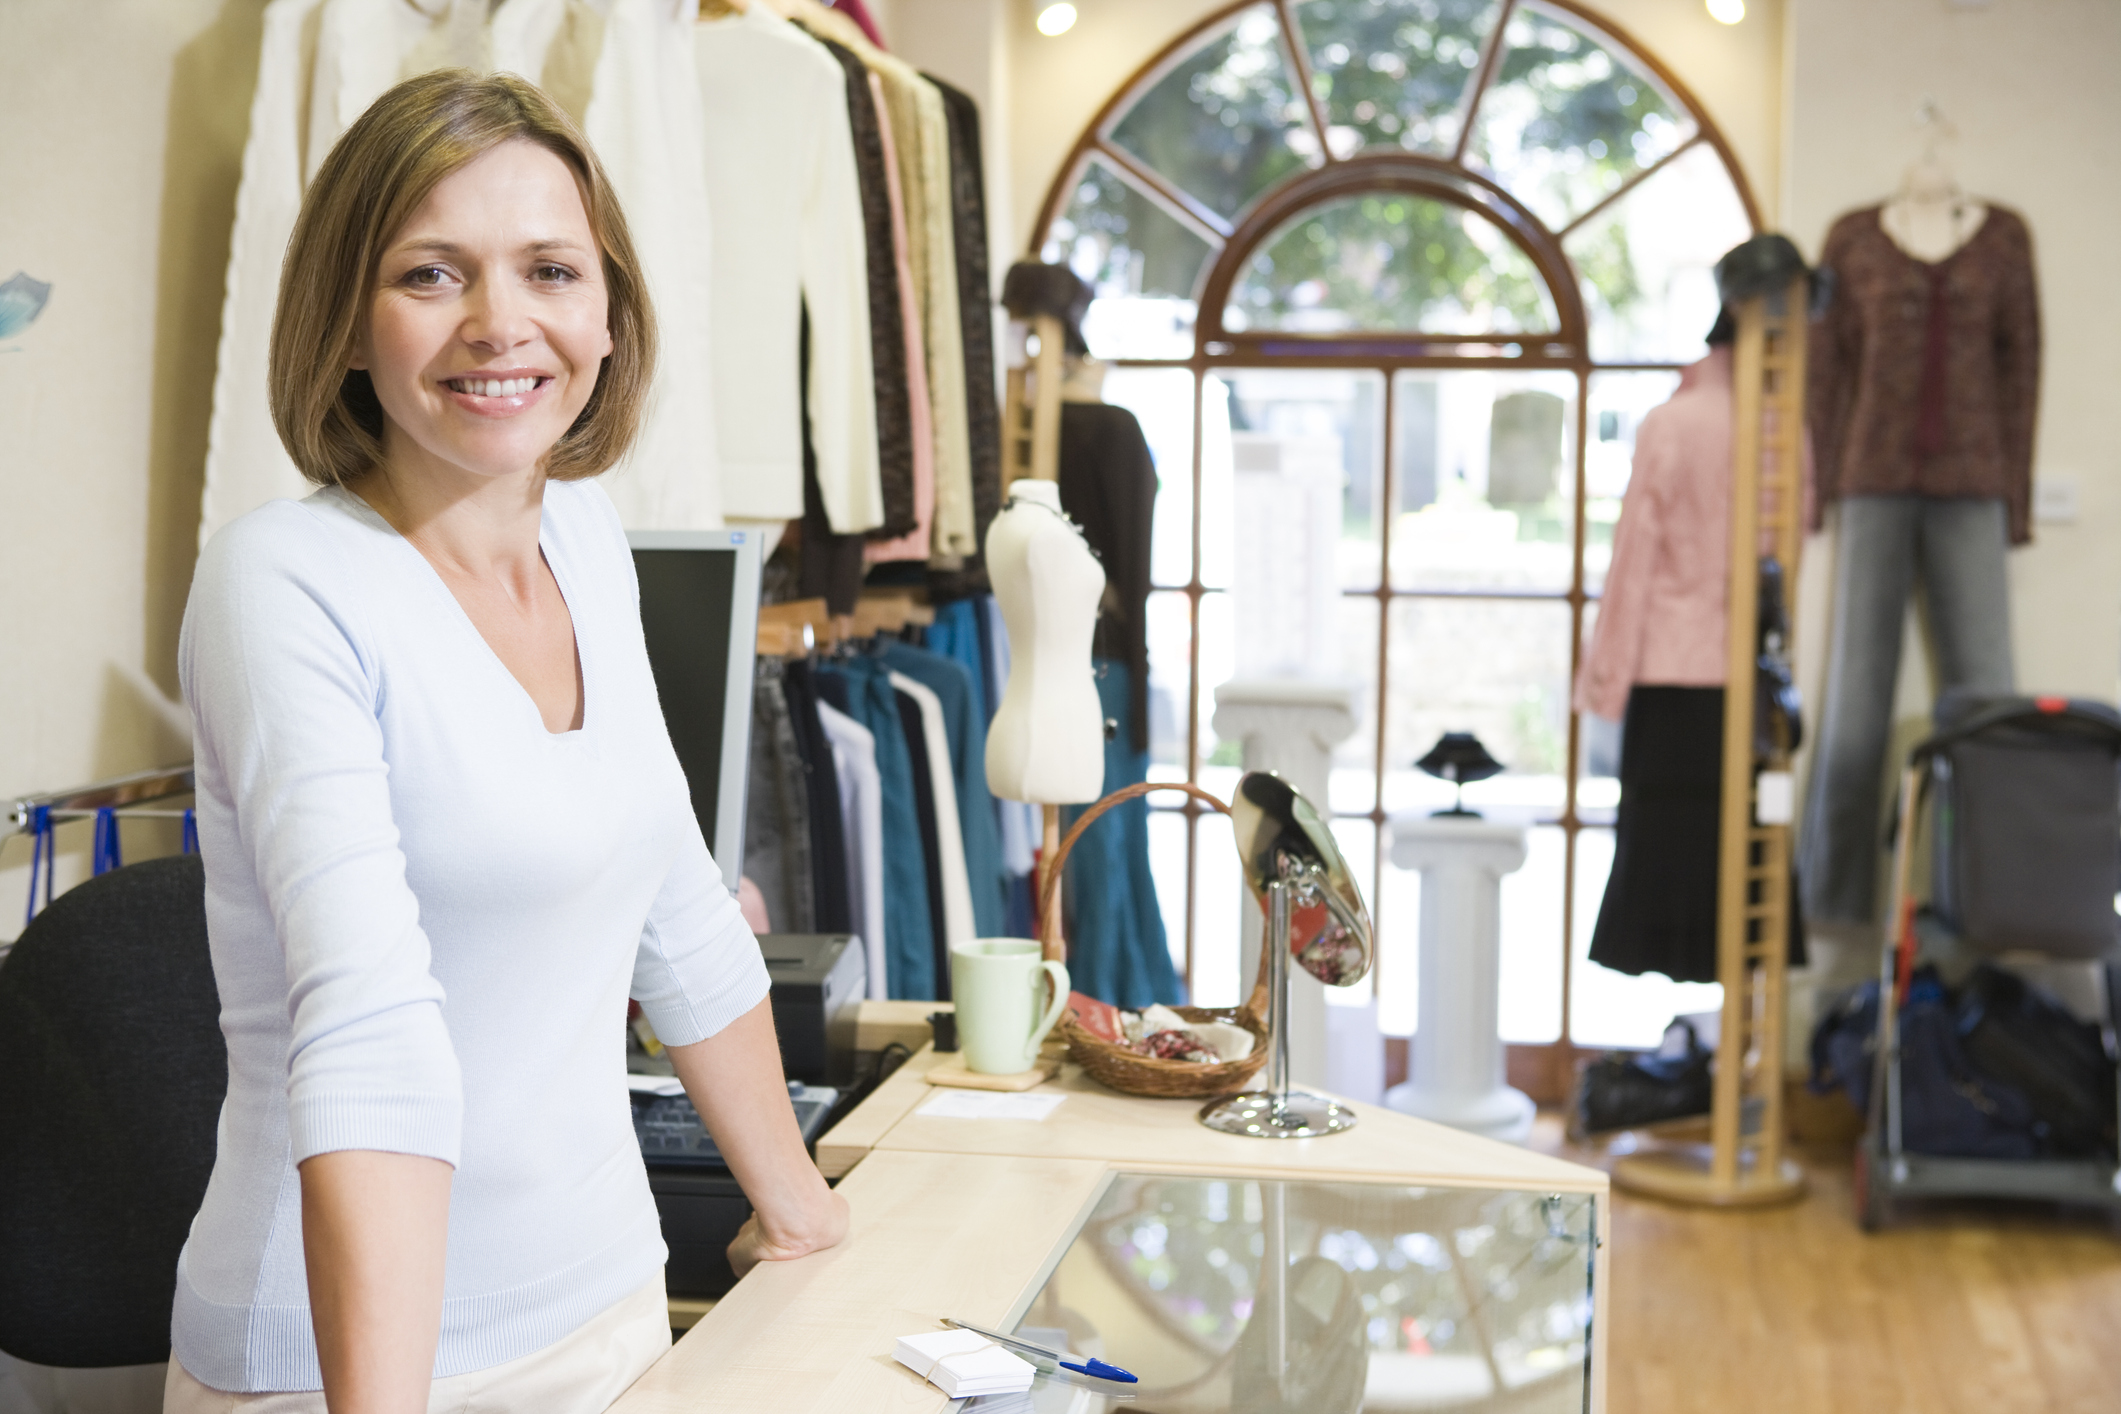 Local small business owner of a boutique